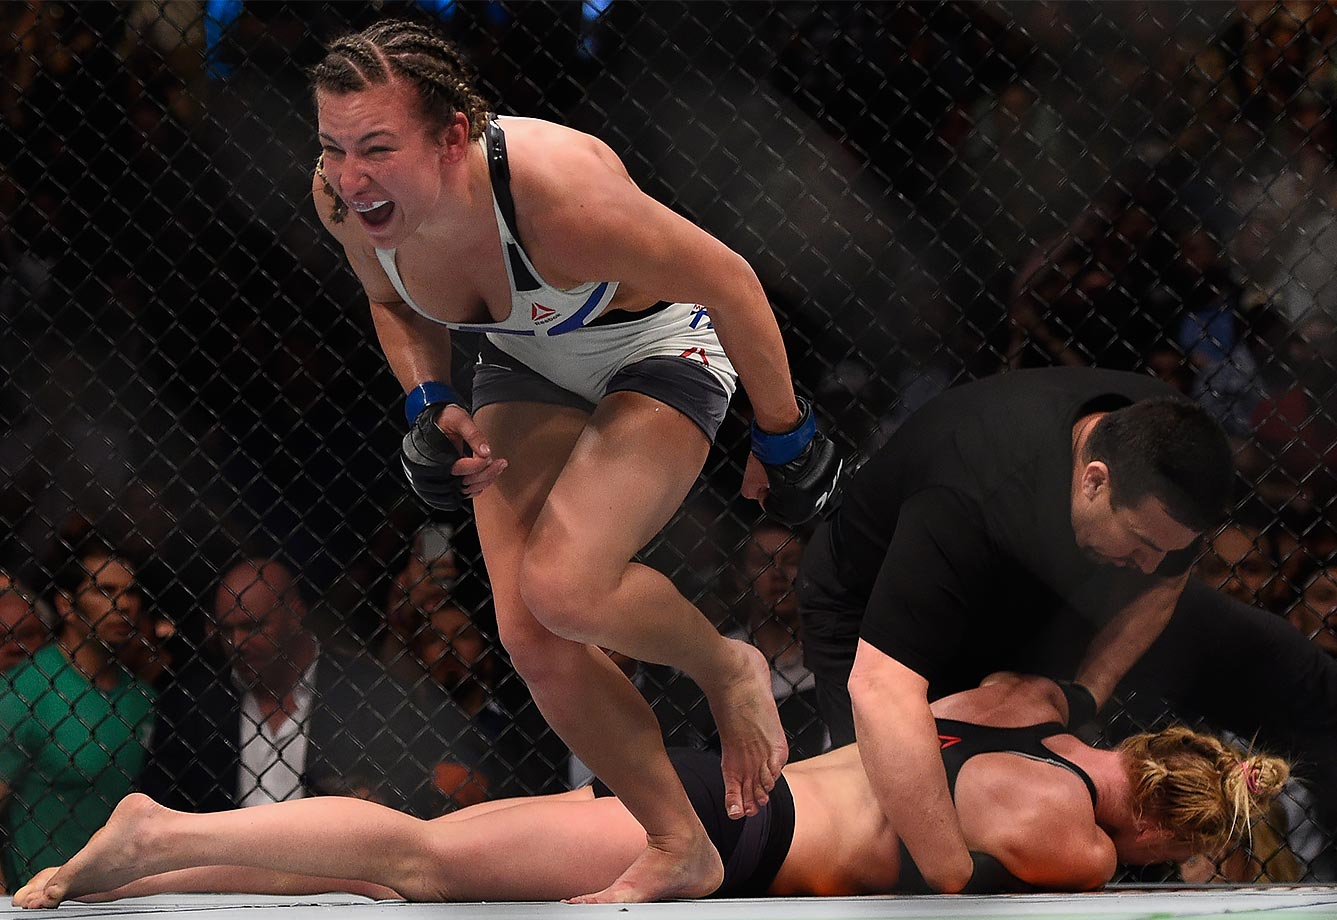 Miesha Tate celebrates after defeating Holly Holm during the UFC 196 event inside MGM Grand Garden Arena on March 5, 2016 in Las Vegas, Nevada.